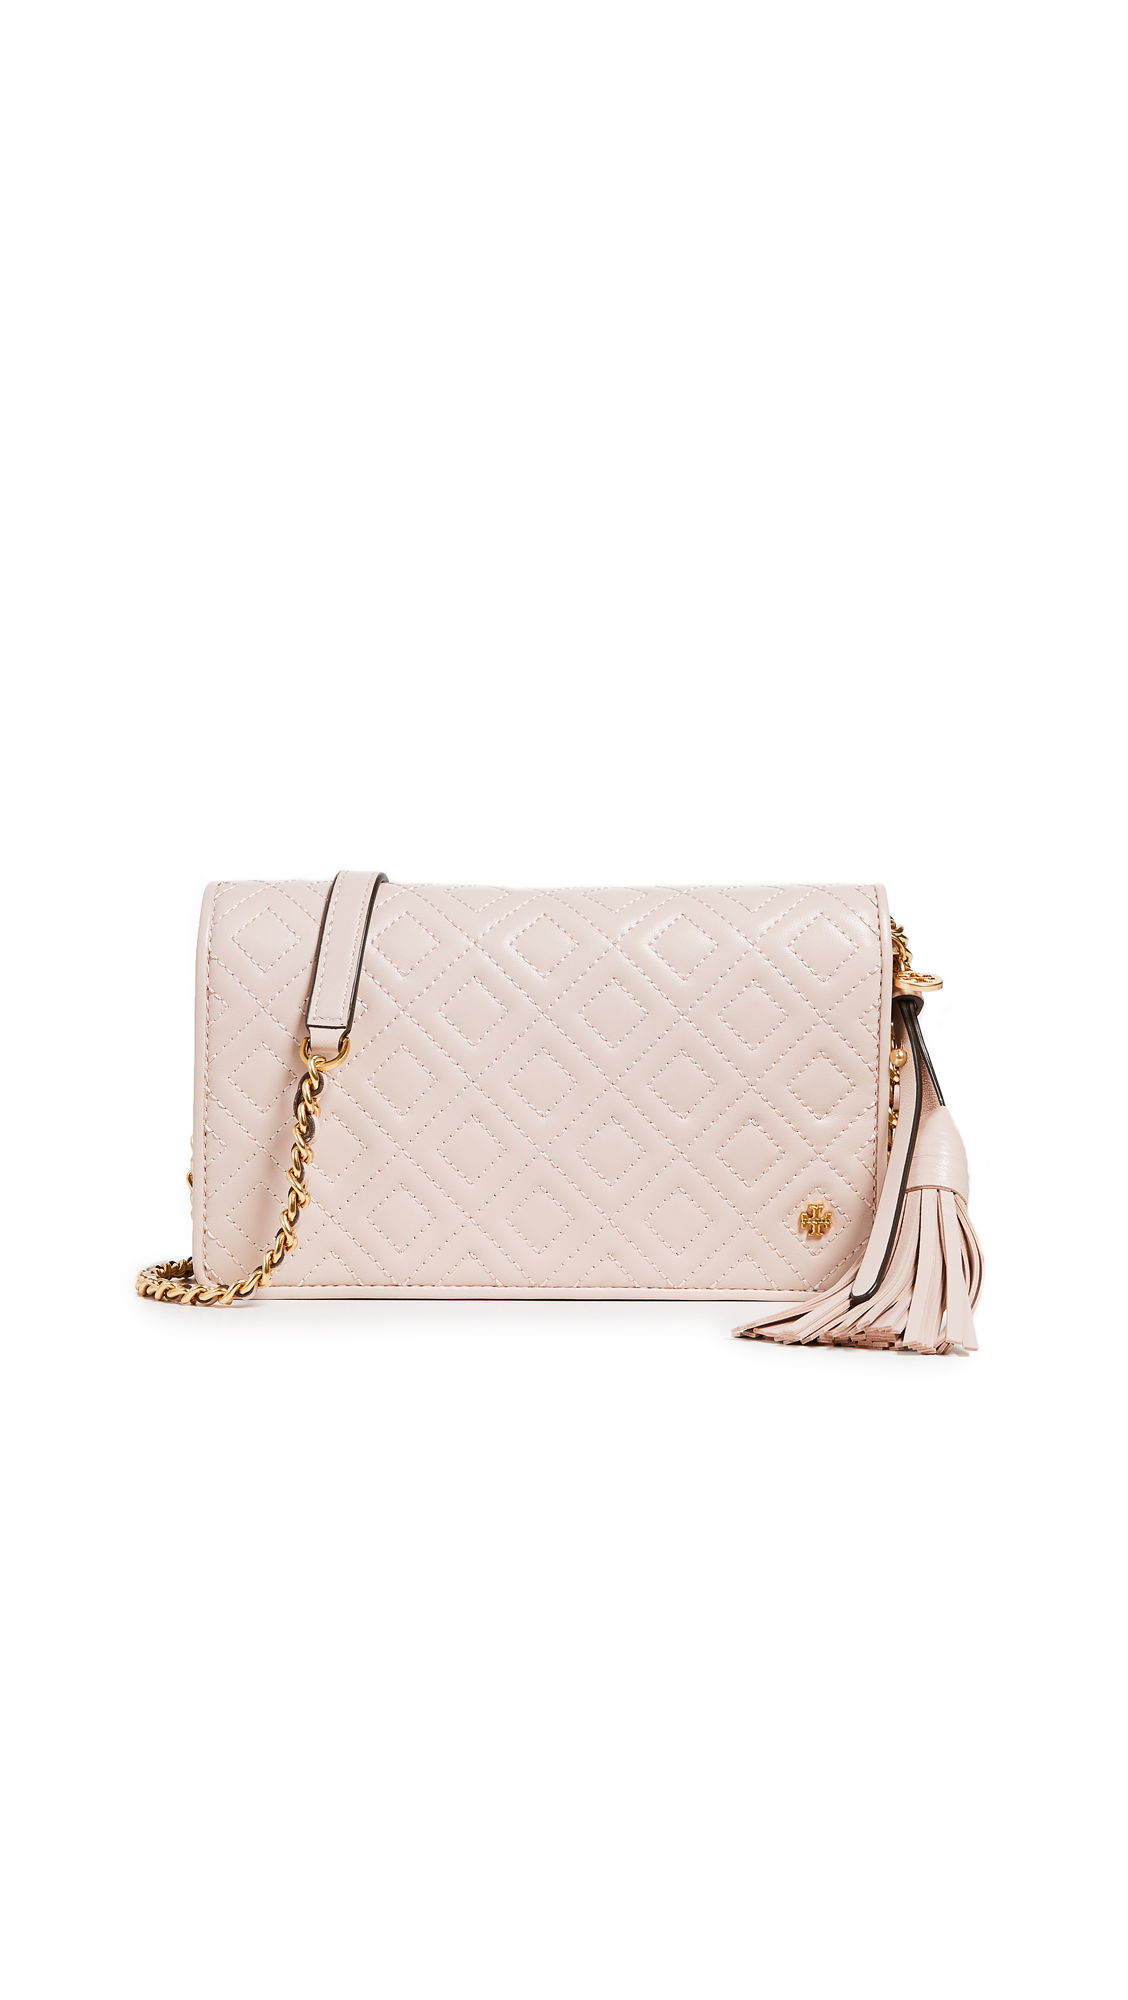 FLEMING FLAT WALLET CROSS BODY BAG